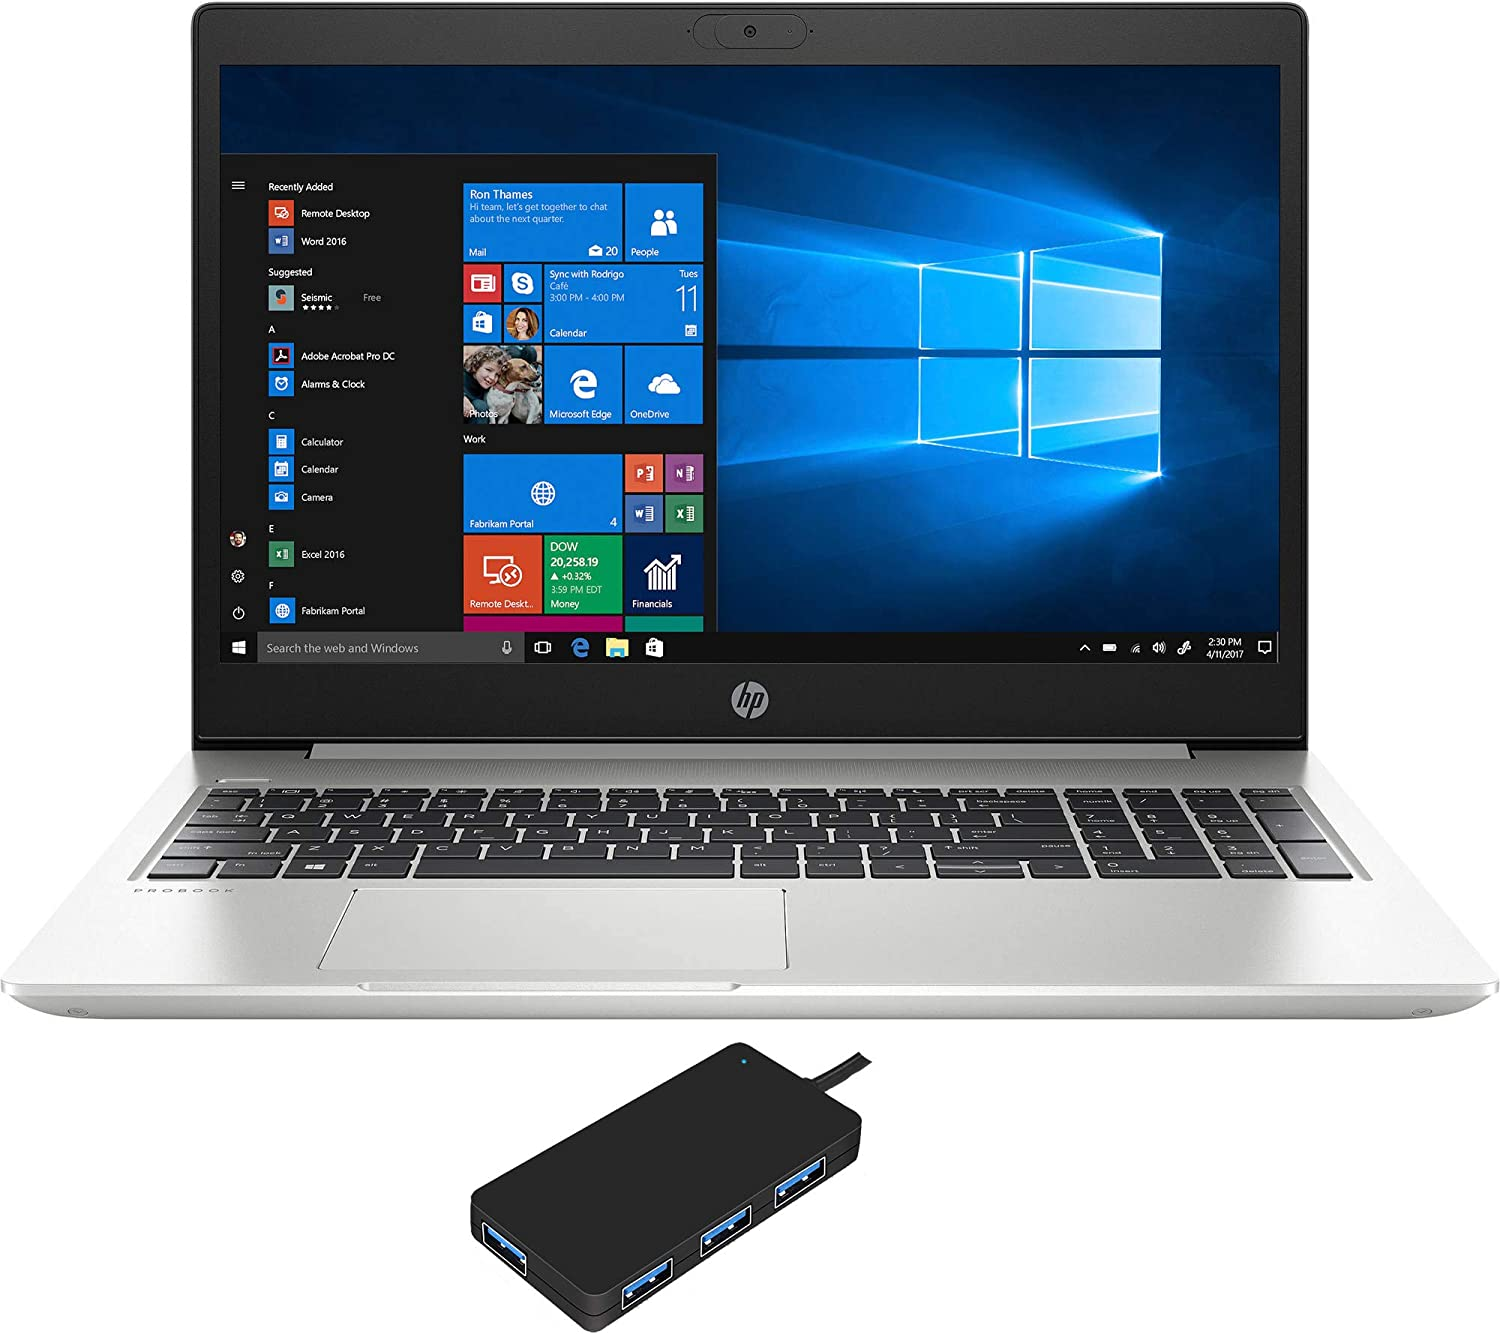 "HP ProBook 450 G7 Home and Business Laptop (Intel i5-10210U 4-Core, 16GB RAM, 512GB PCIe SSD, Intel UHD Graphics, 15.6"" HD (1366x768), WiFi, Bluetooth, Webcam, 2xUSB 3.1, Win 10 Pro) with USB Hub"